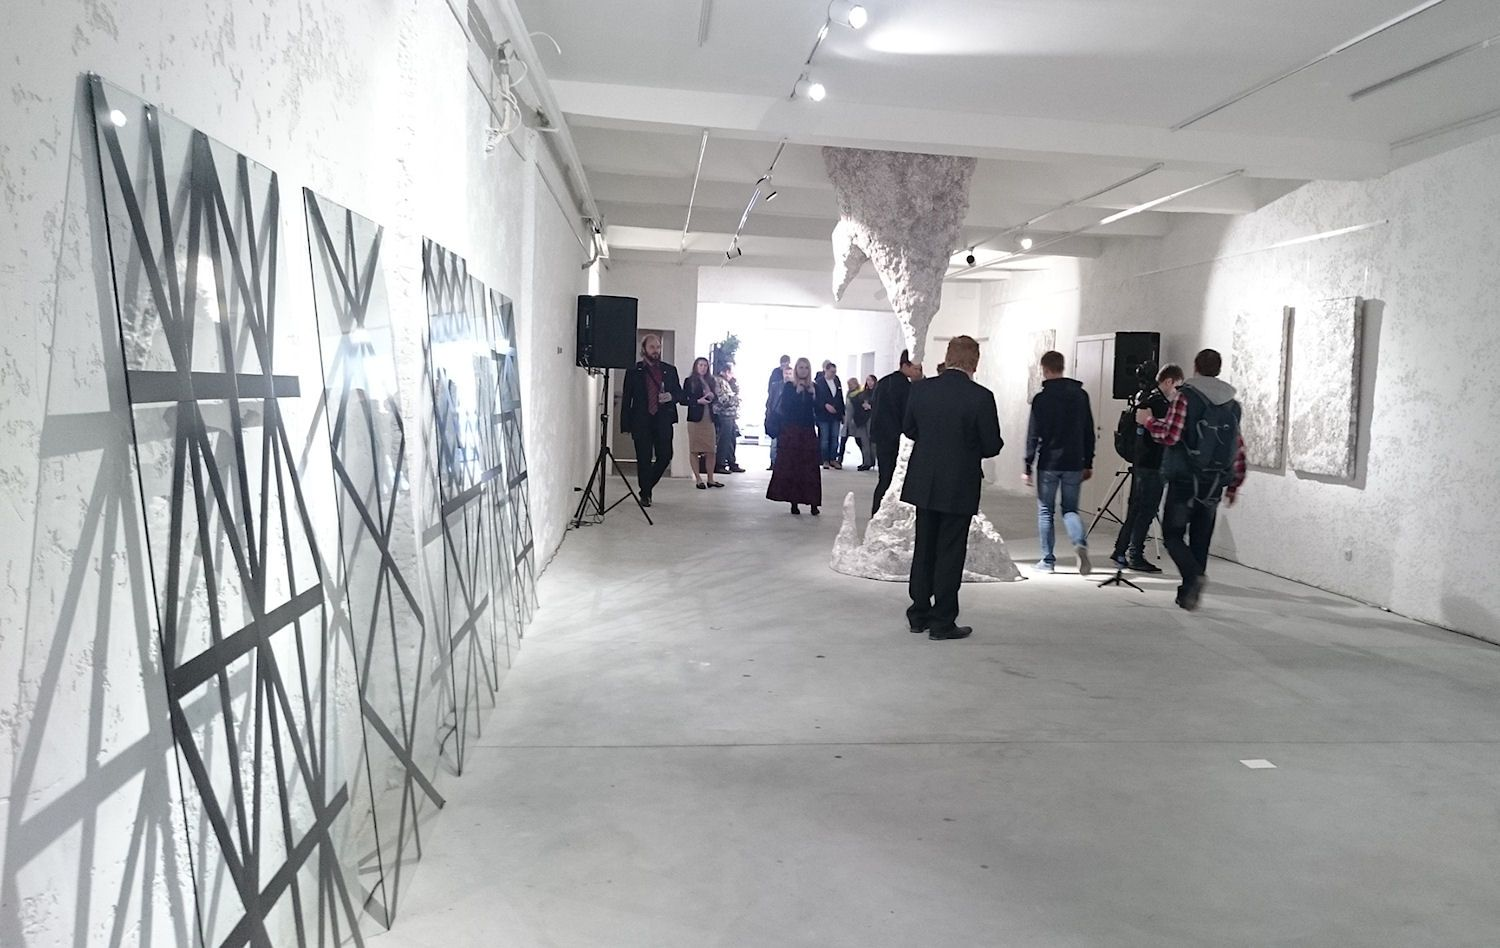 U.A.F. Gallery: a white space ready for various transformations. Besides artist exhibitions, film screenings, poetry readings and other cultural events are planned here #interdema #art #artspace #artgallery #арт